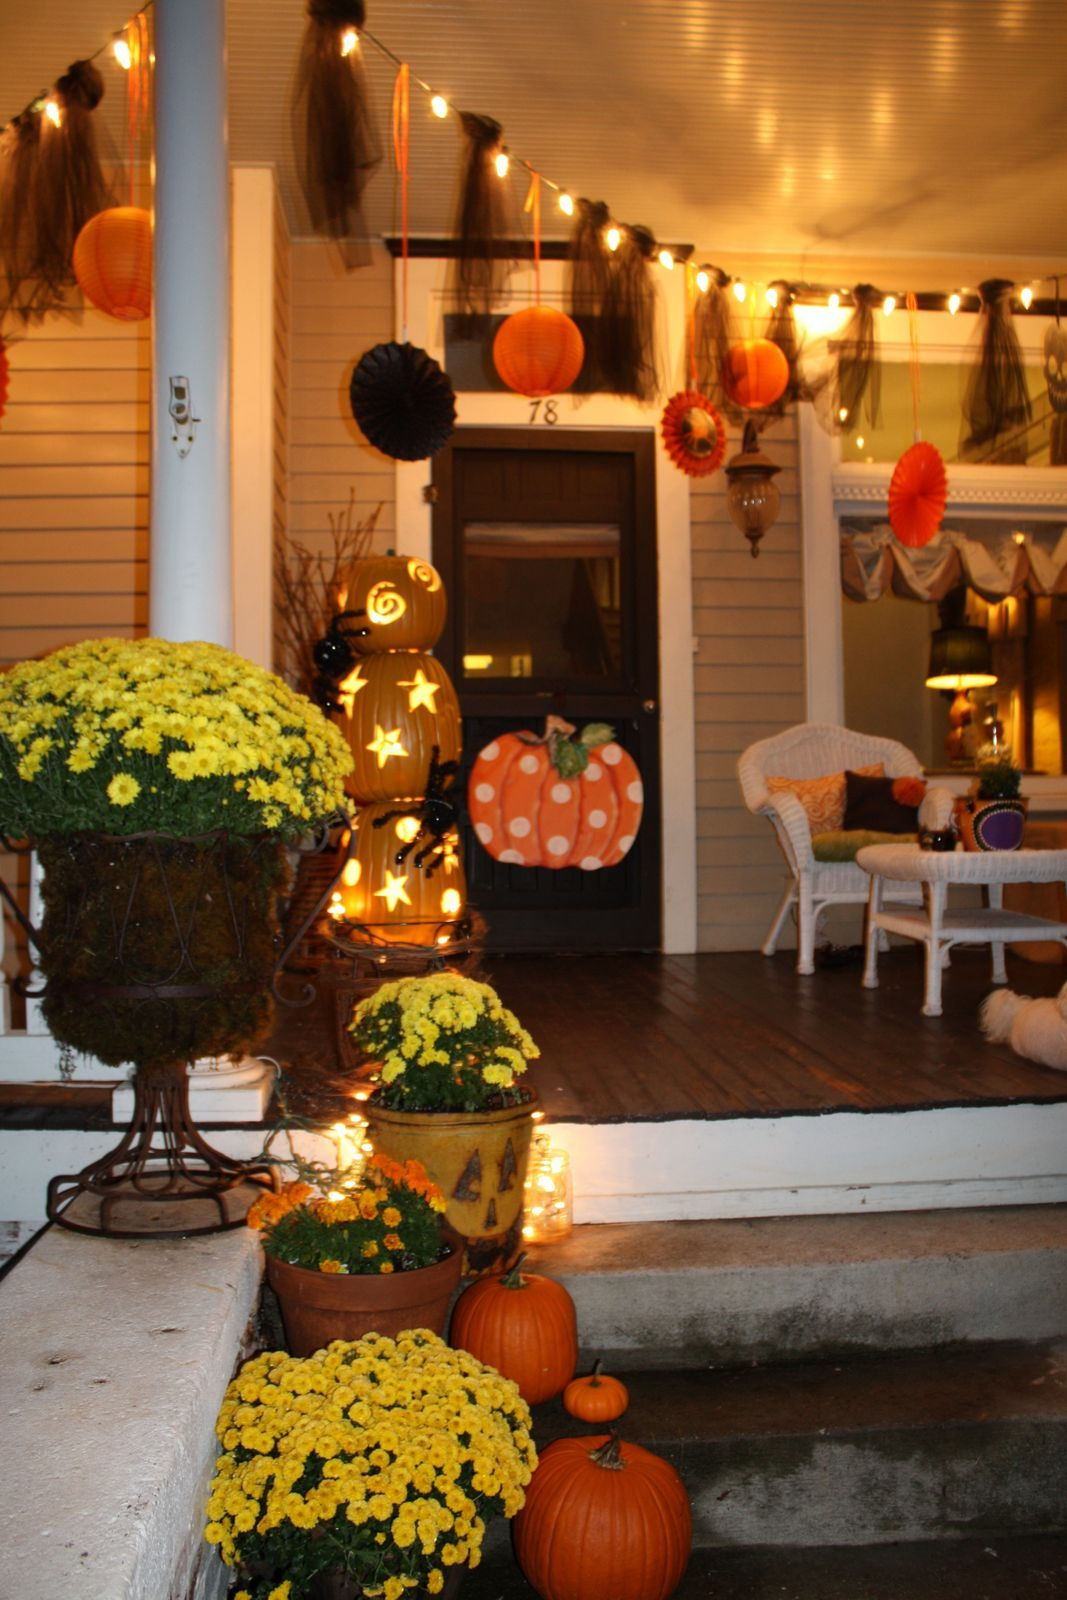 Cozy, not creepy. What a happy way to celebrate Halloween!